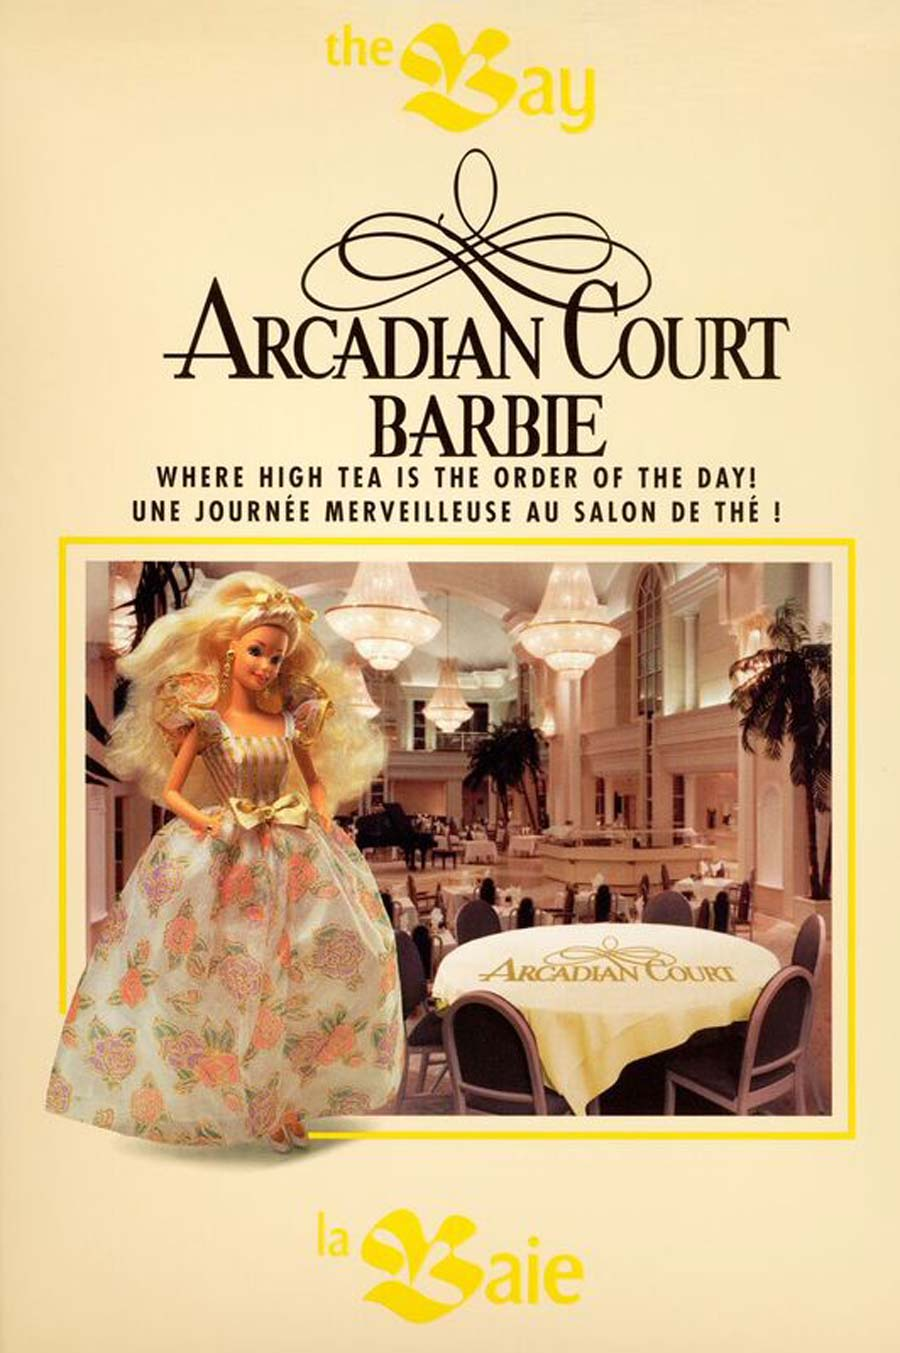 an old poster advertisement for the Arcadian Court Barbie with the real Barbie doll and a photo of the interior venue